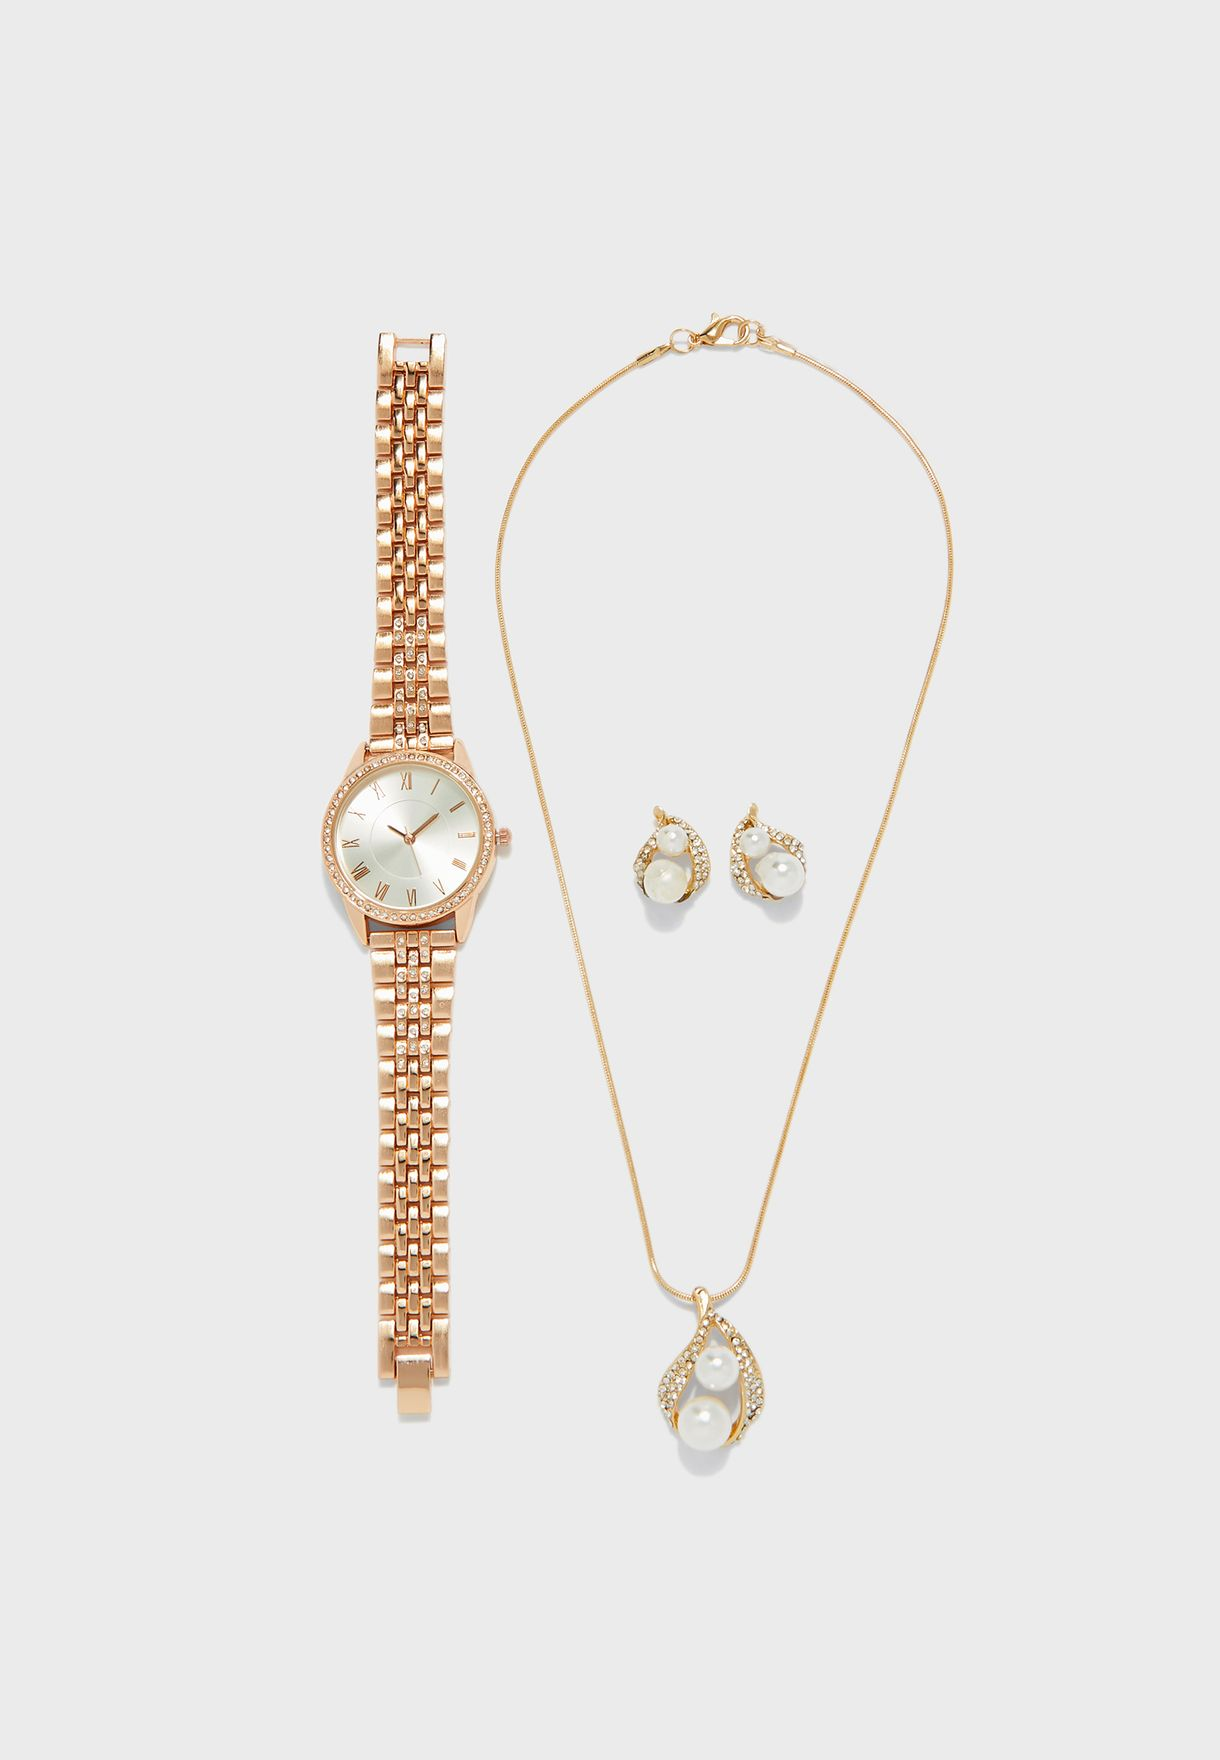 Two Tone Watch And 2 Piece Jewelry Set